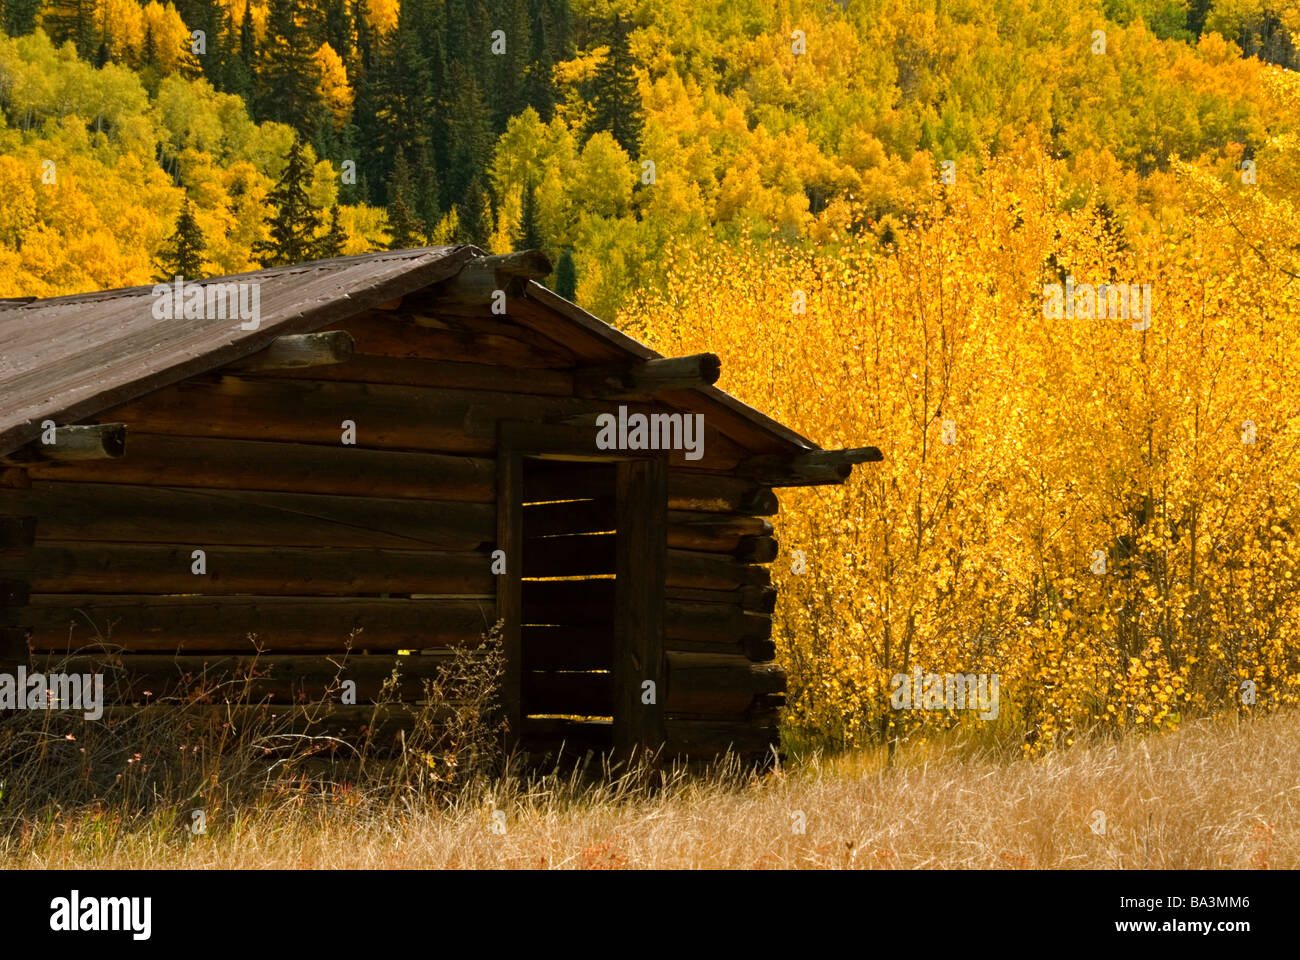 Old log cabin in autumn, Ashcroft, Colorado US - Stock Image